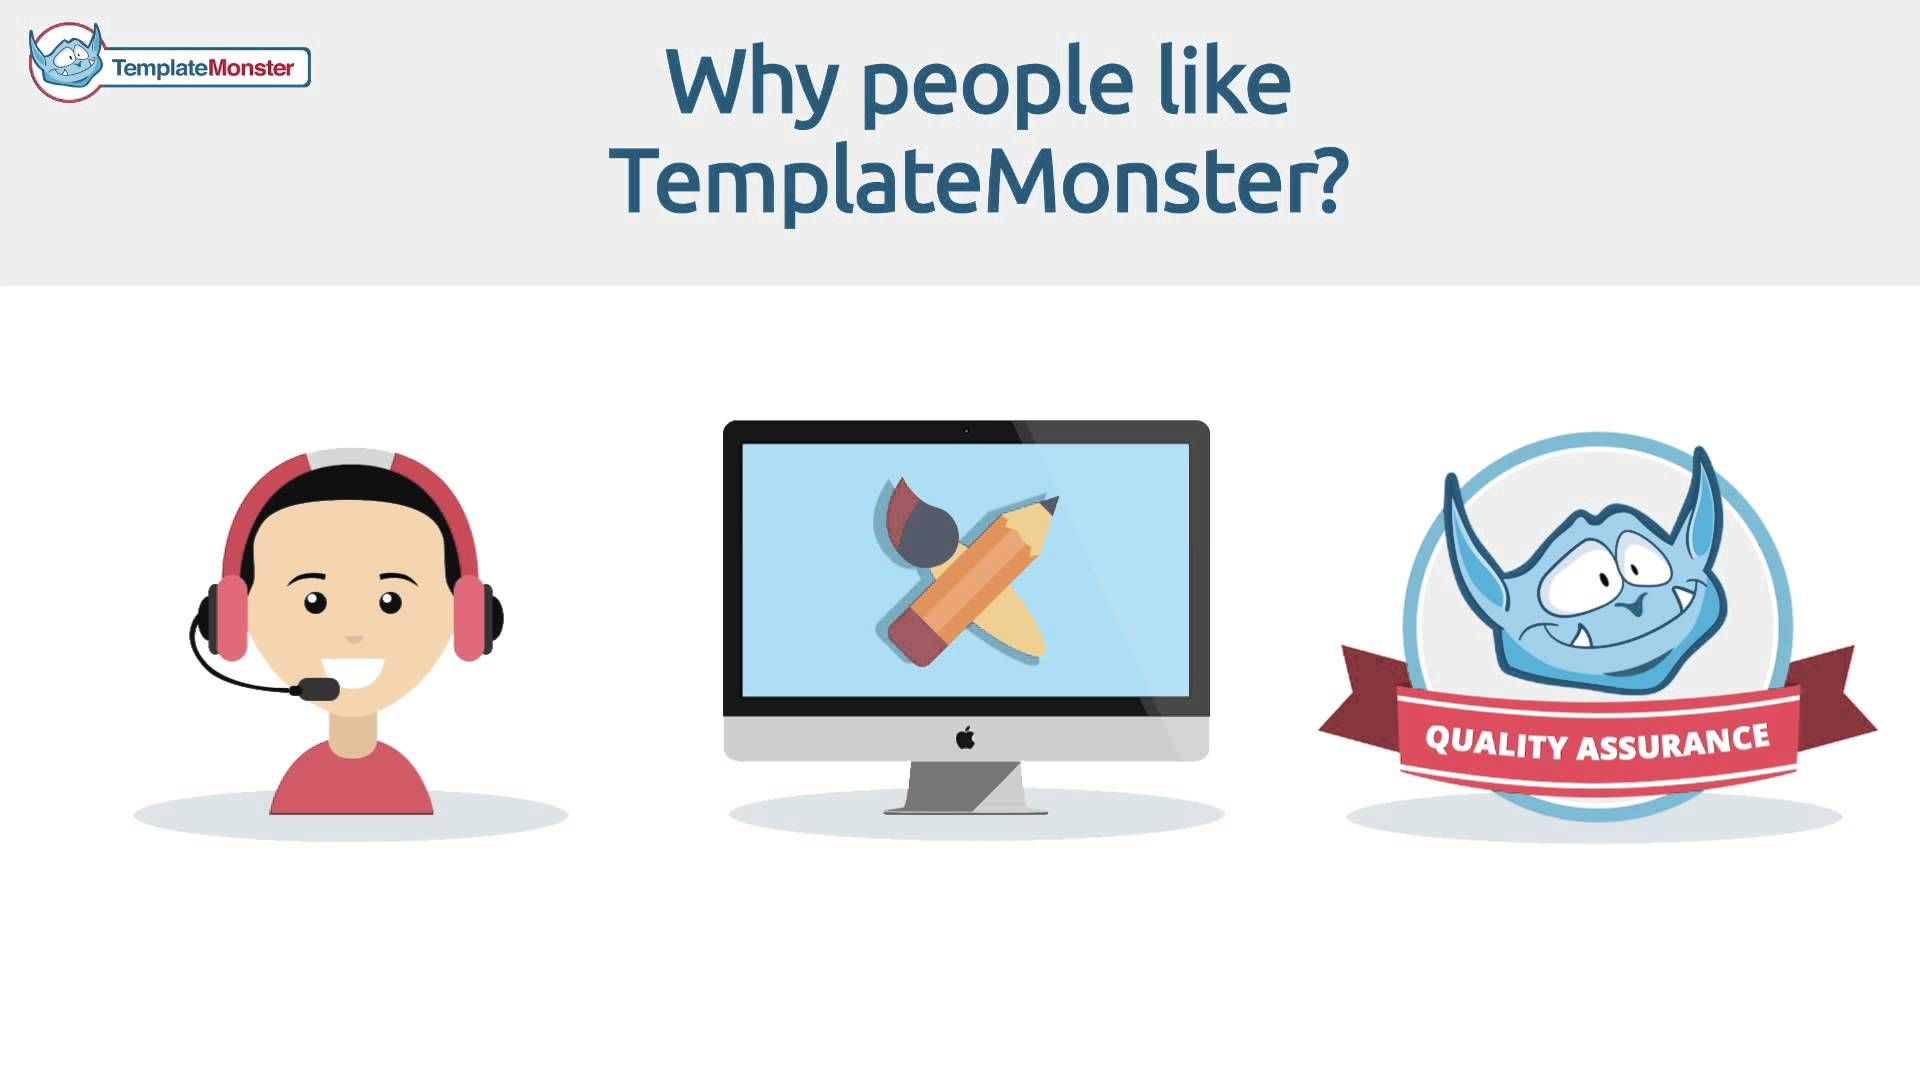 Who Is TemplateMonster?